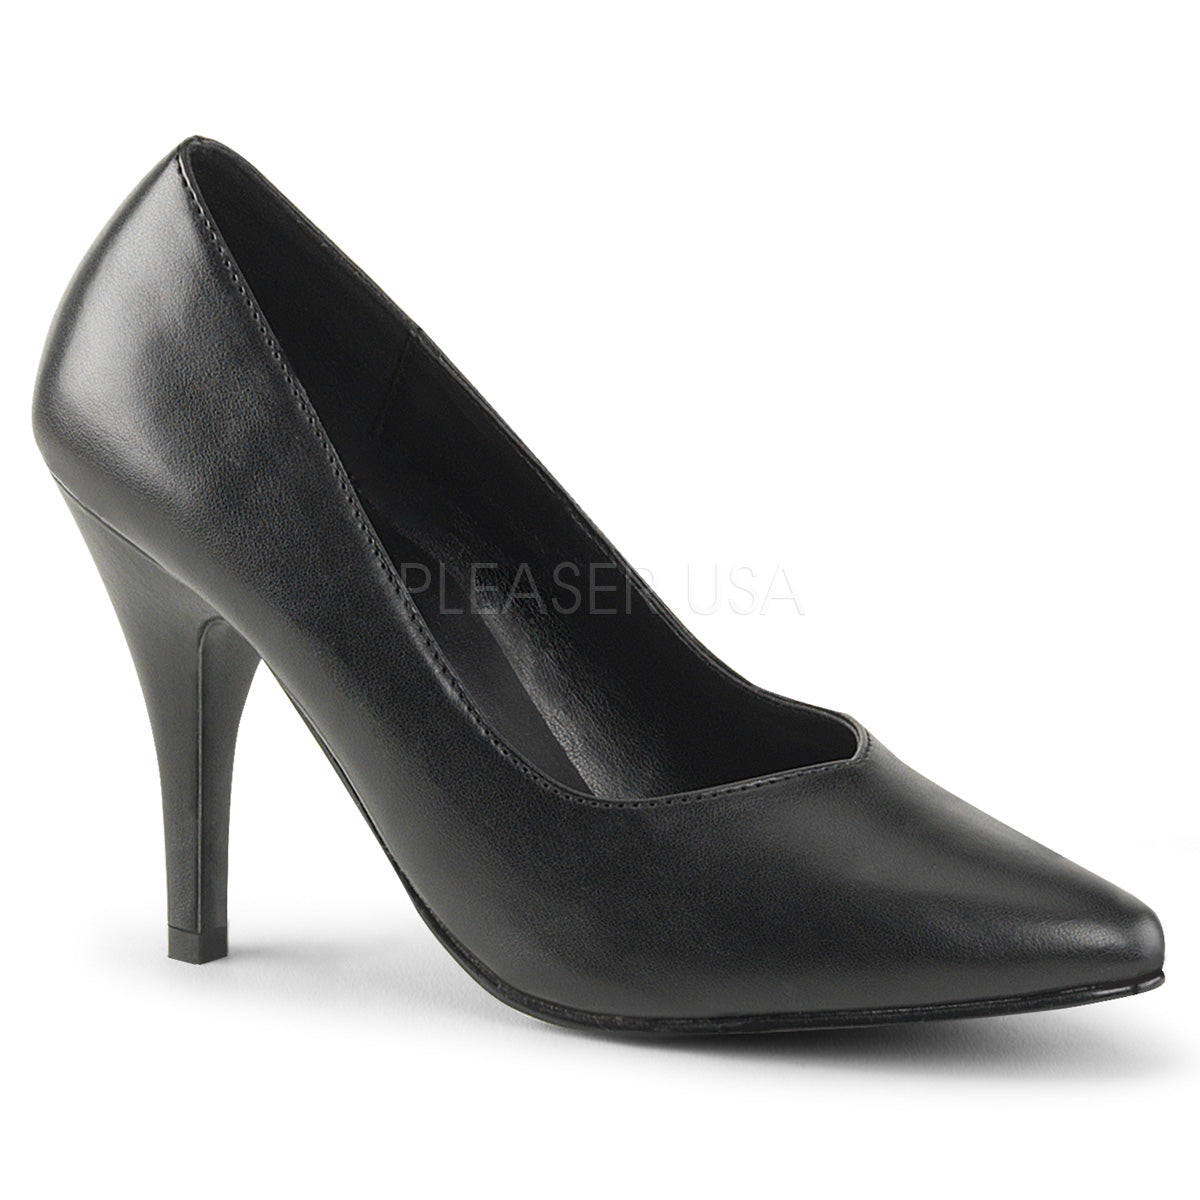 "4"" Heel DREAM-420 Black Pu"